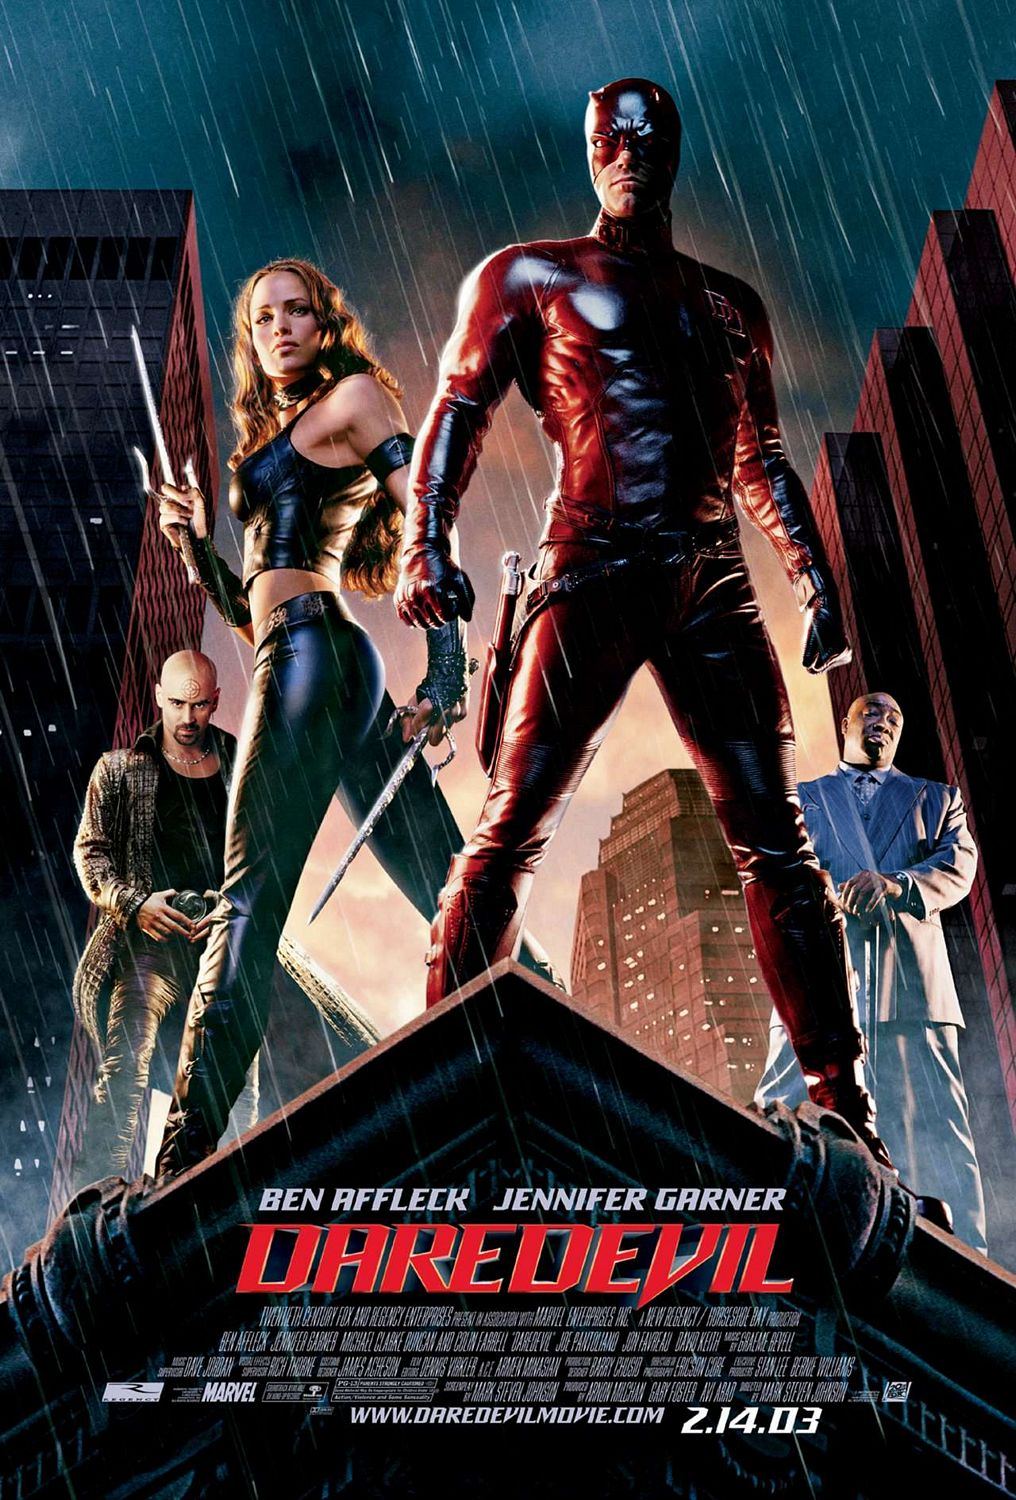 Daredevil (2003) Photo 24 - Large